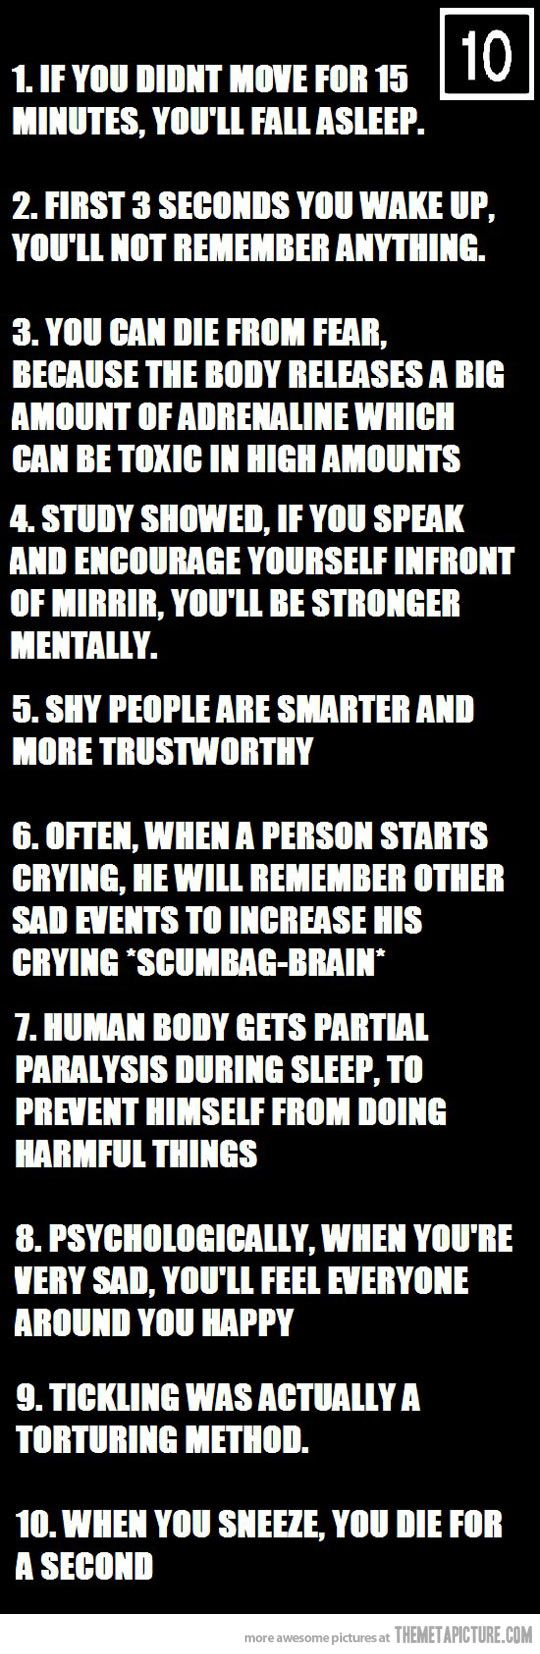 Ten psychological facts…I don't know their truth but they sound interesting.